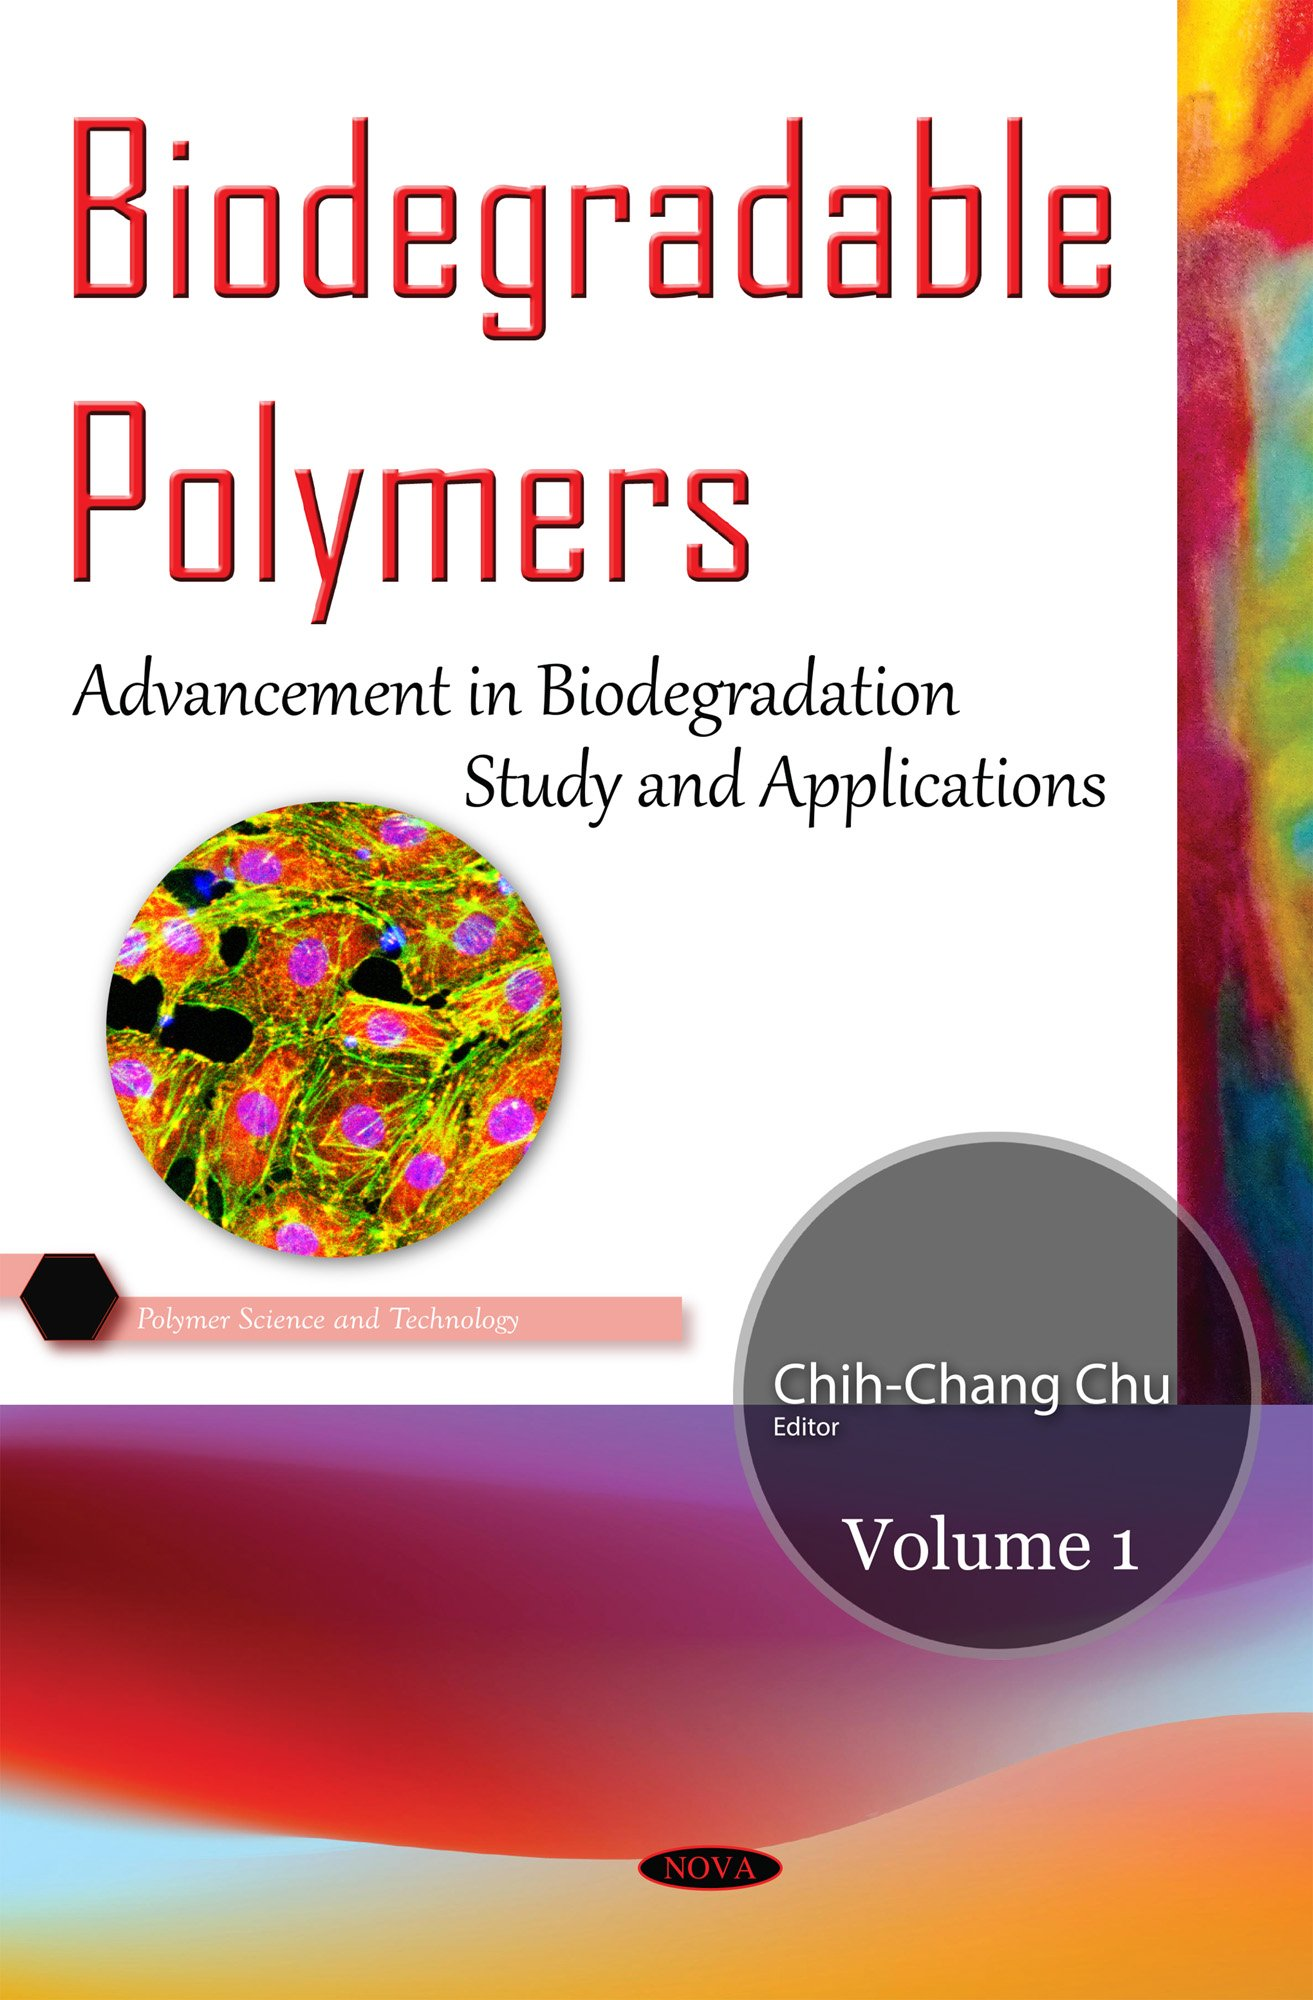 Biodegradable Polymers: Volume 1: Advancement in Biodegradation ...